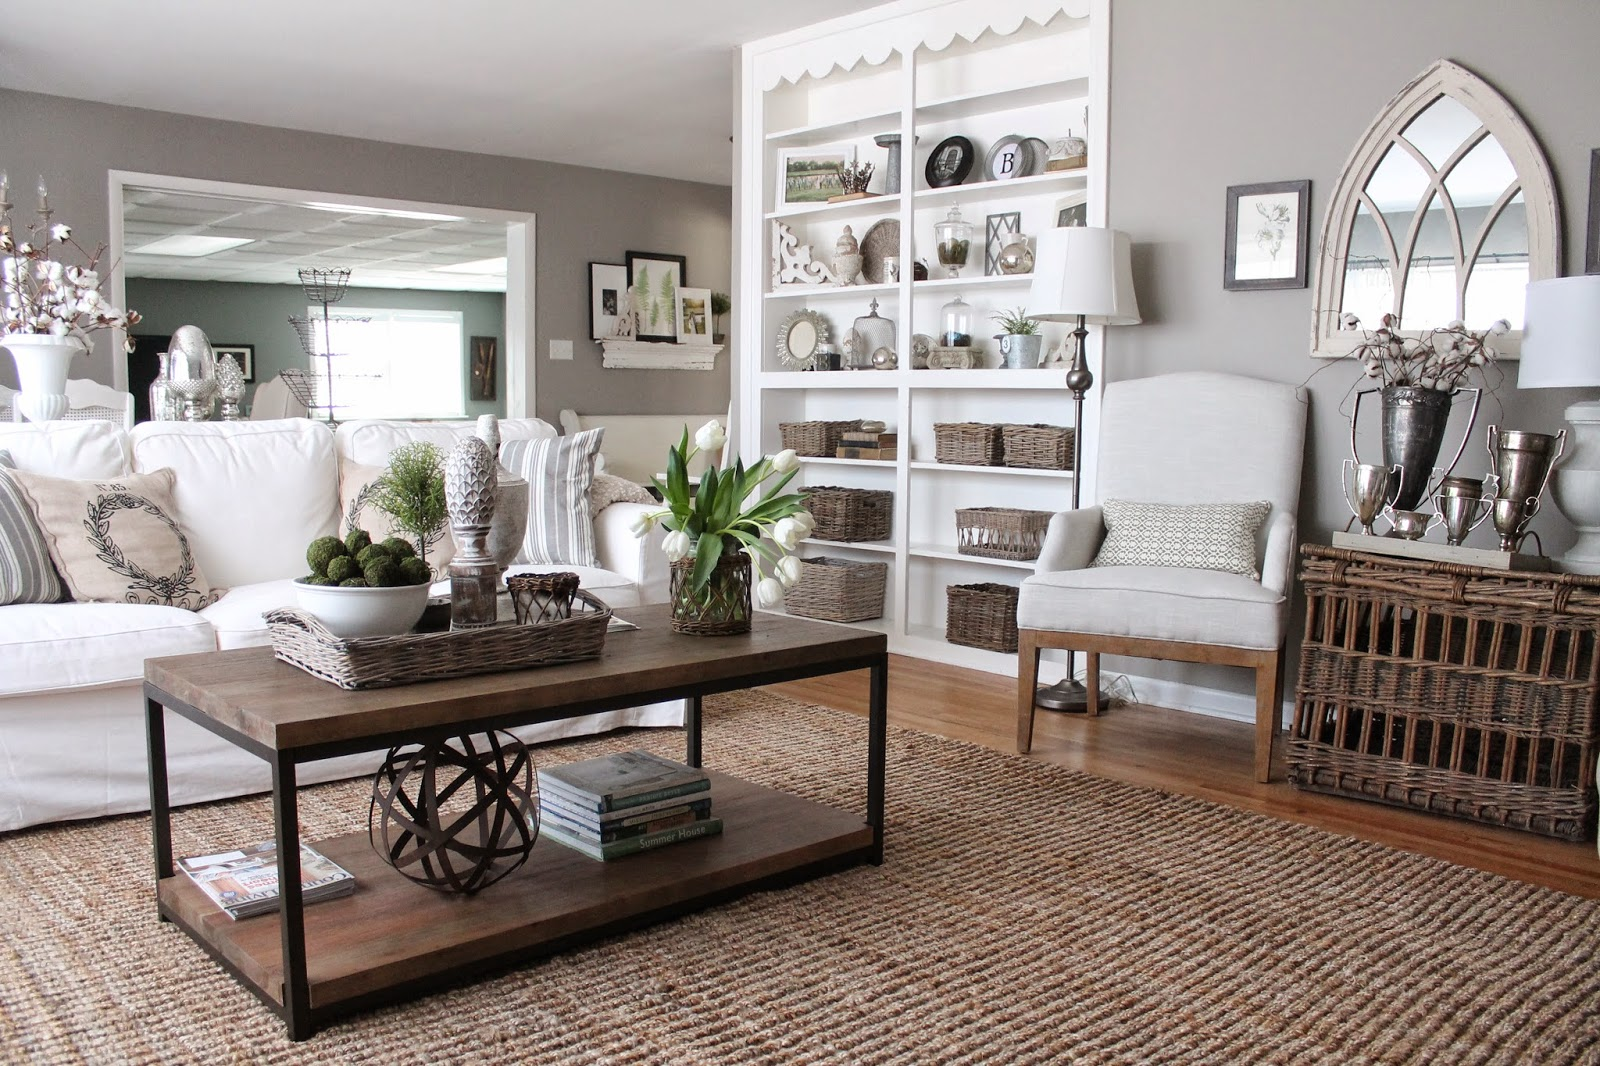 12th and white how to choose gray paint colors - How to pick a paint color for living room ...